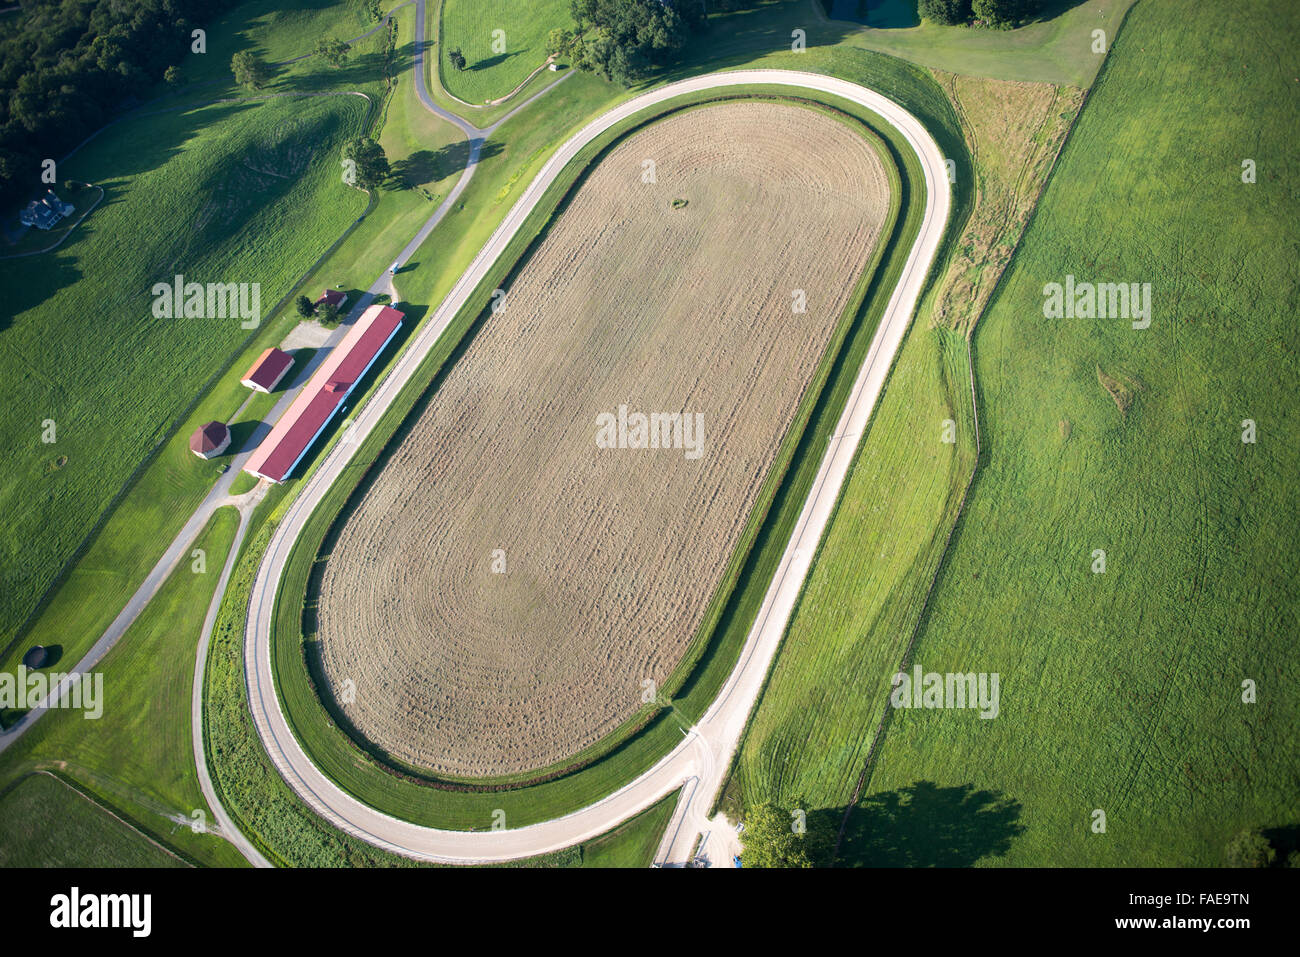 Aerial view of a competitive horse track - Stock Image